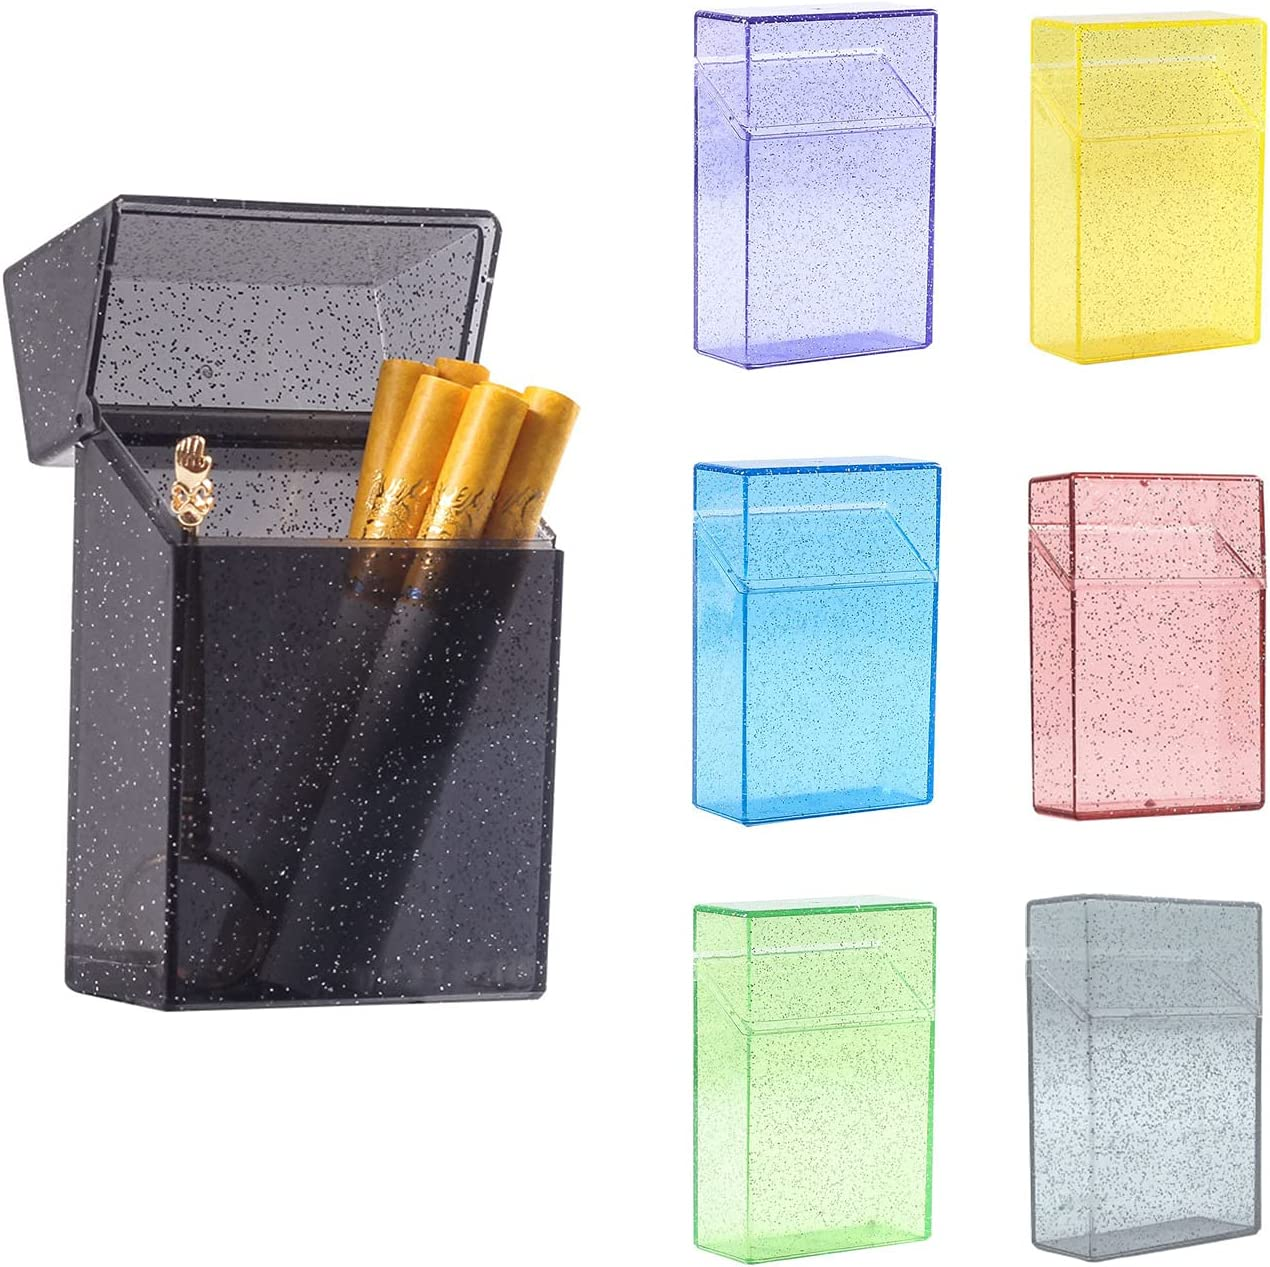 Safety and trust Flip Open Cigarette Case Women Plastic Cases for safety